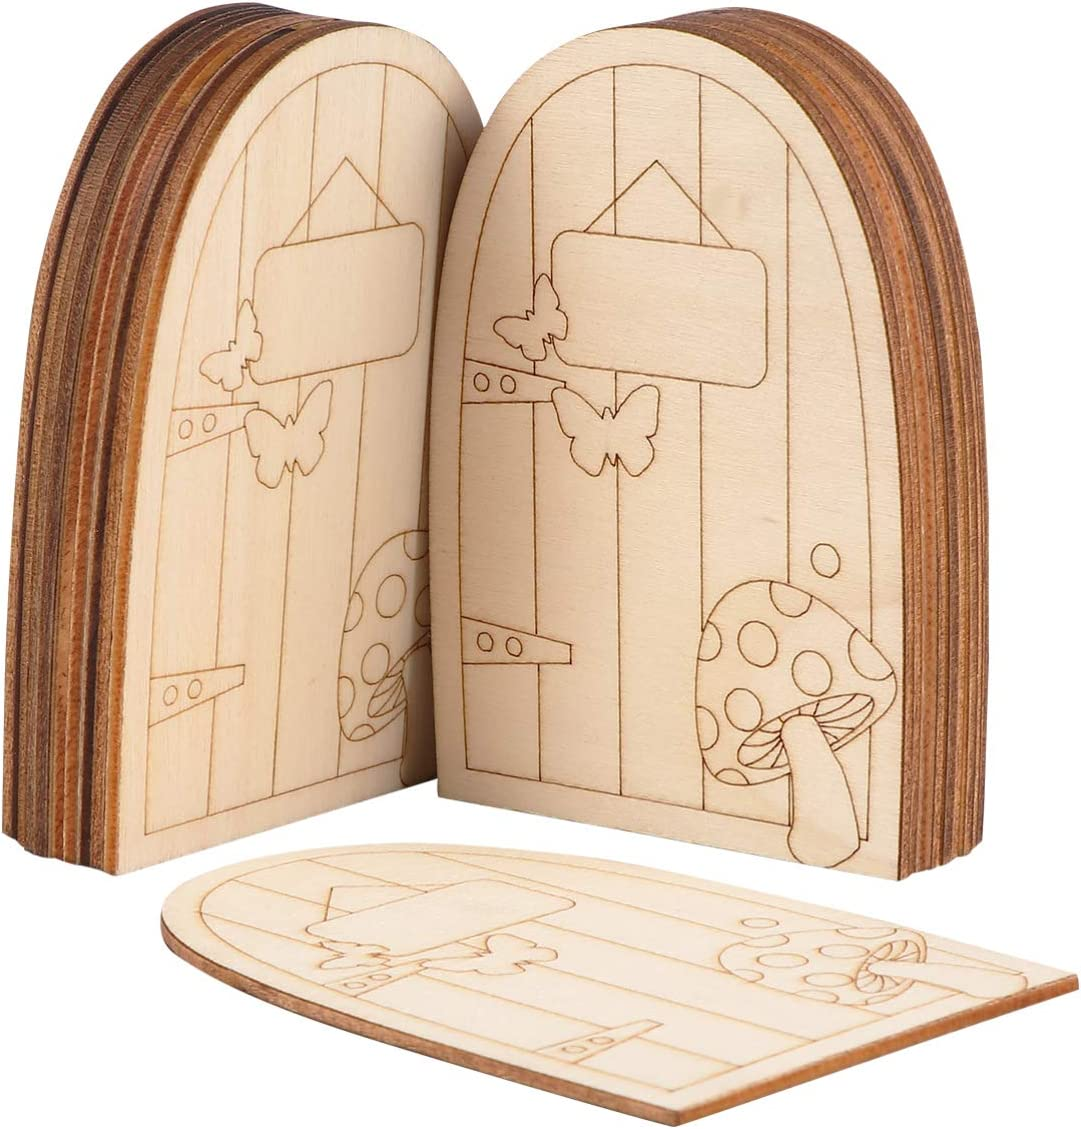 DOITOOL 20 pcs Mini Furniture Miniature Wooden A surprise price is realized Max 45% OFF Door